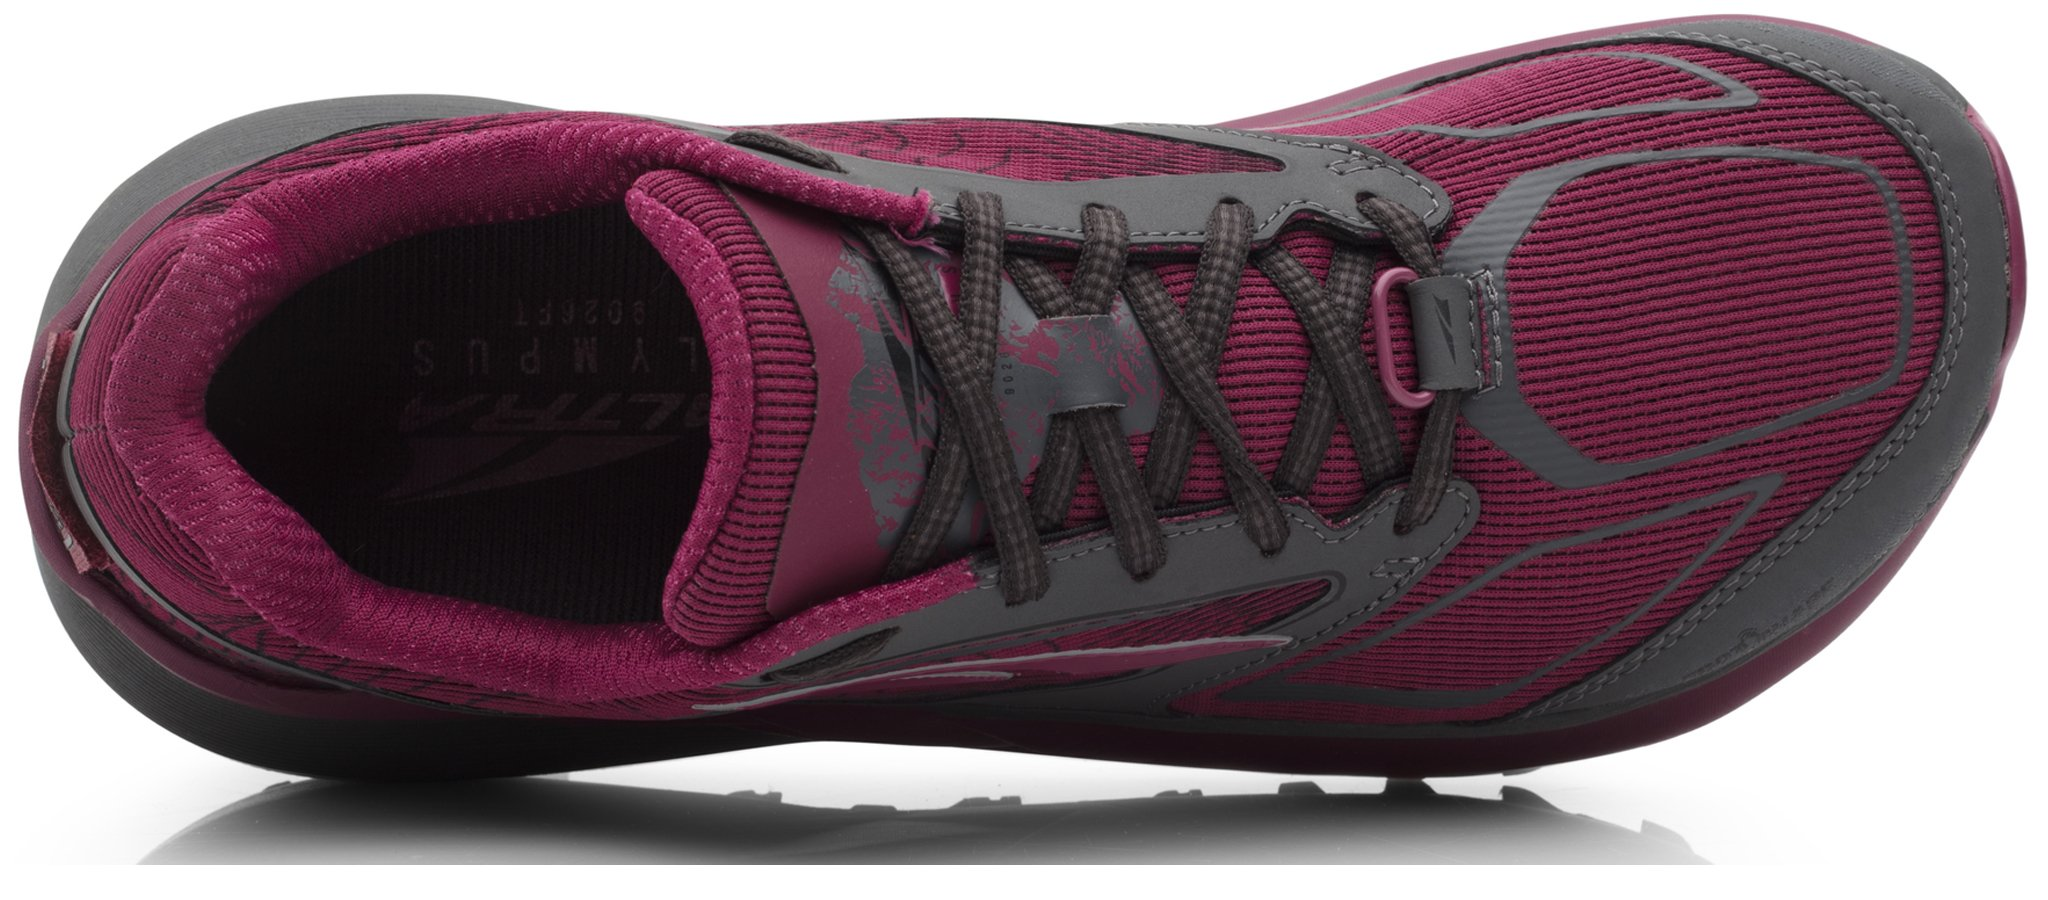 Altra AFW1859F Women's Olympus 3 Trail Running Shoe, Raspberry - 11 B(M) US by Altra (Image #3)